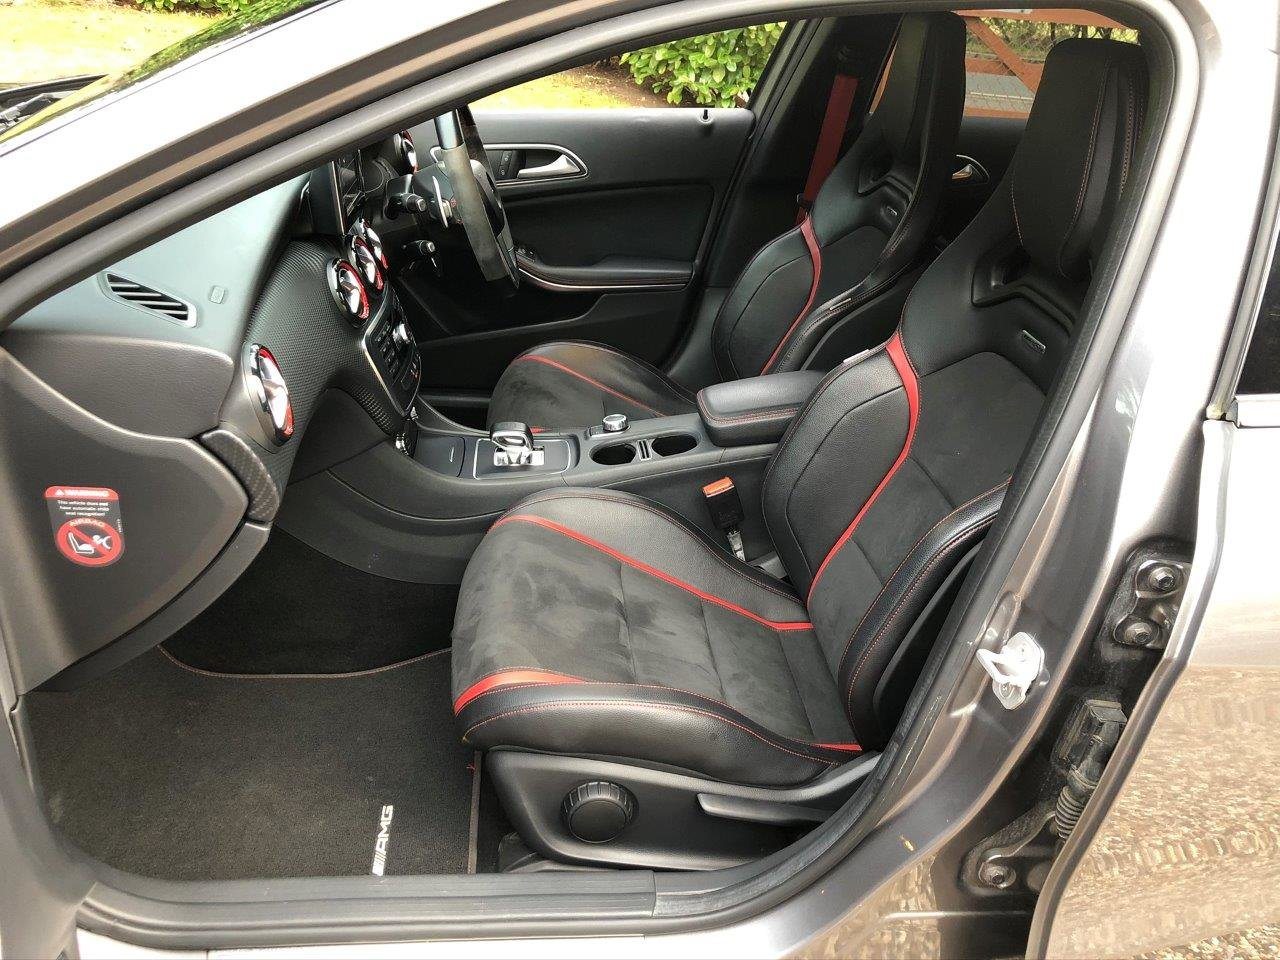 2015 Mercedes A45 AMG 4-Matic 7DCT 5-door hatchback For Sale (picture 6 of 6)